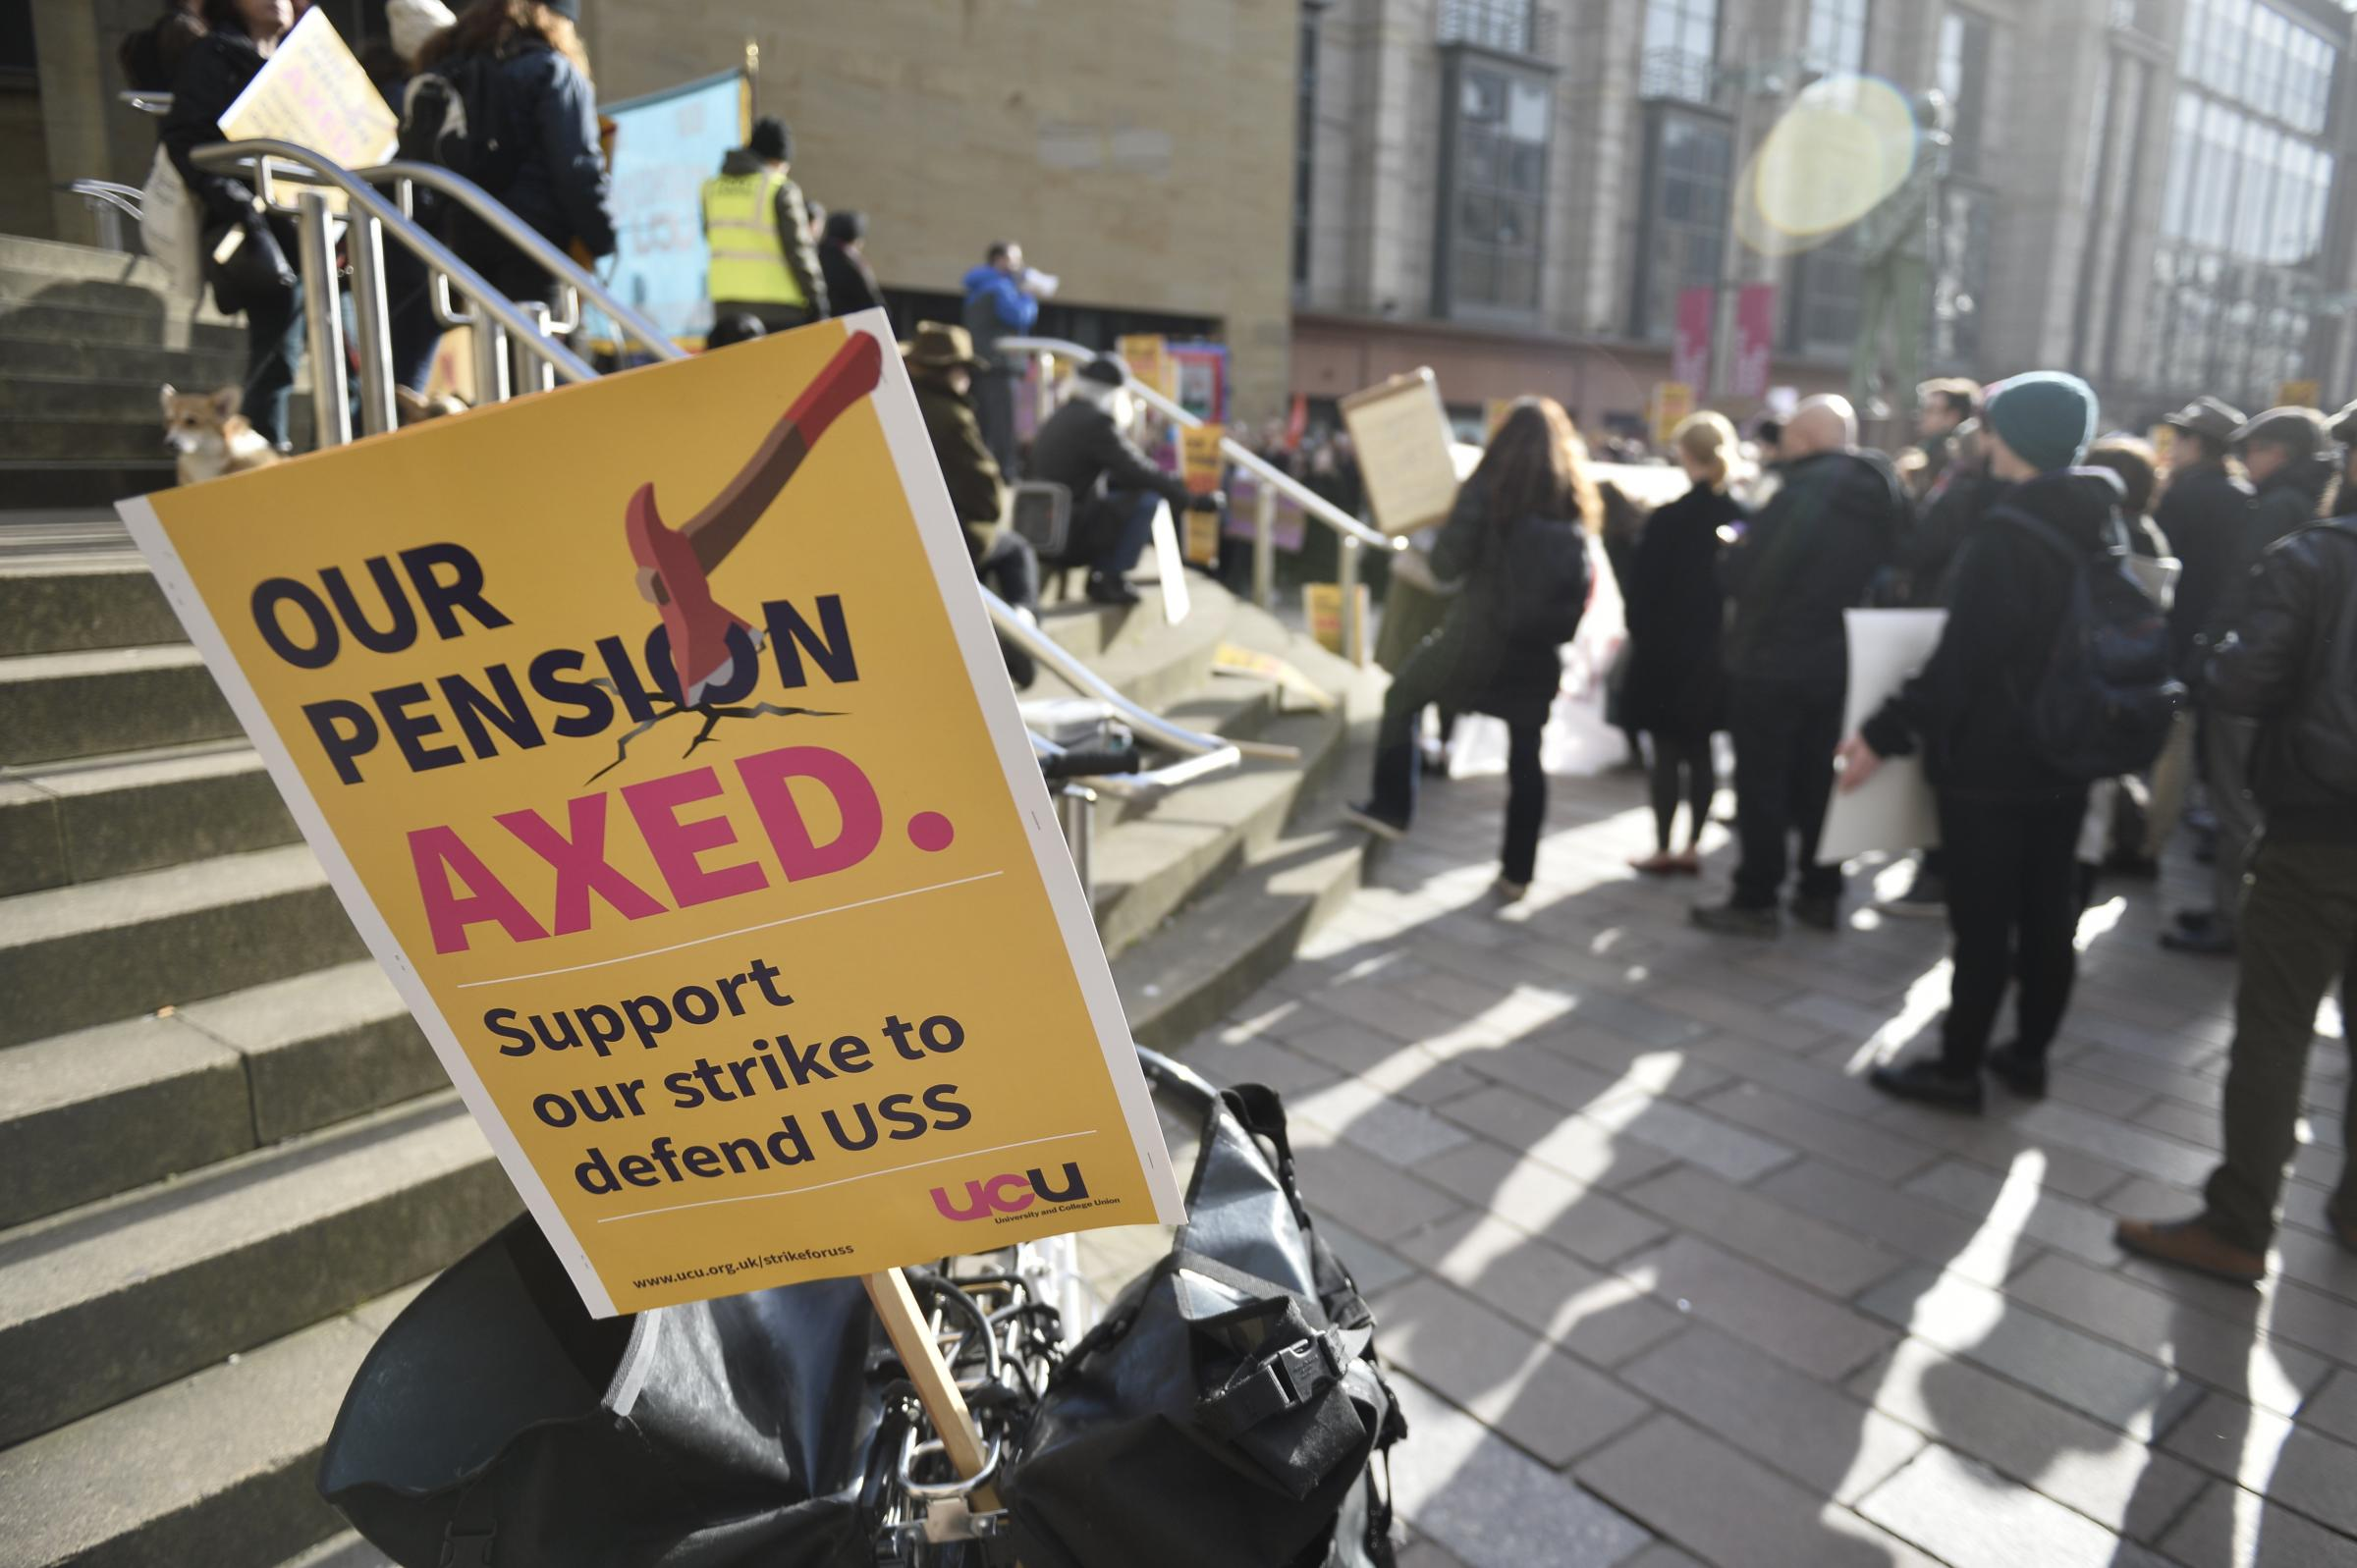 Academics from Strathclyde and Glasgow Universities hold a rally as part of a walk-out over proposed reforms to their pensions.